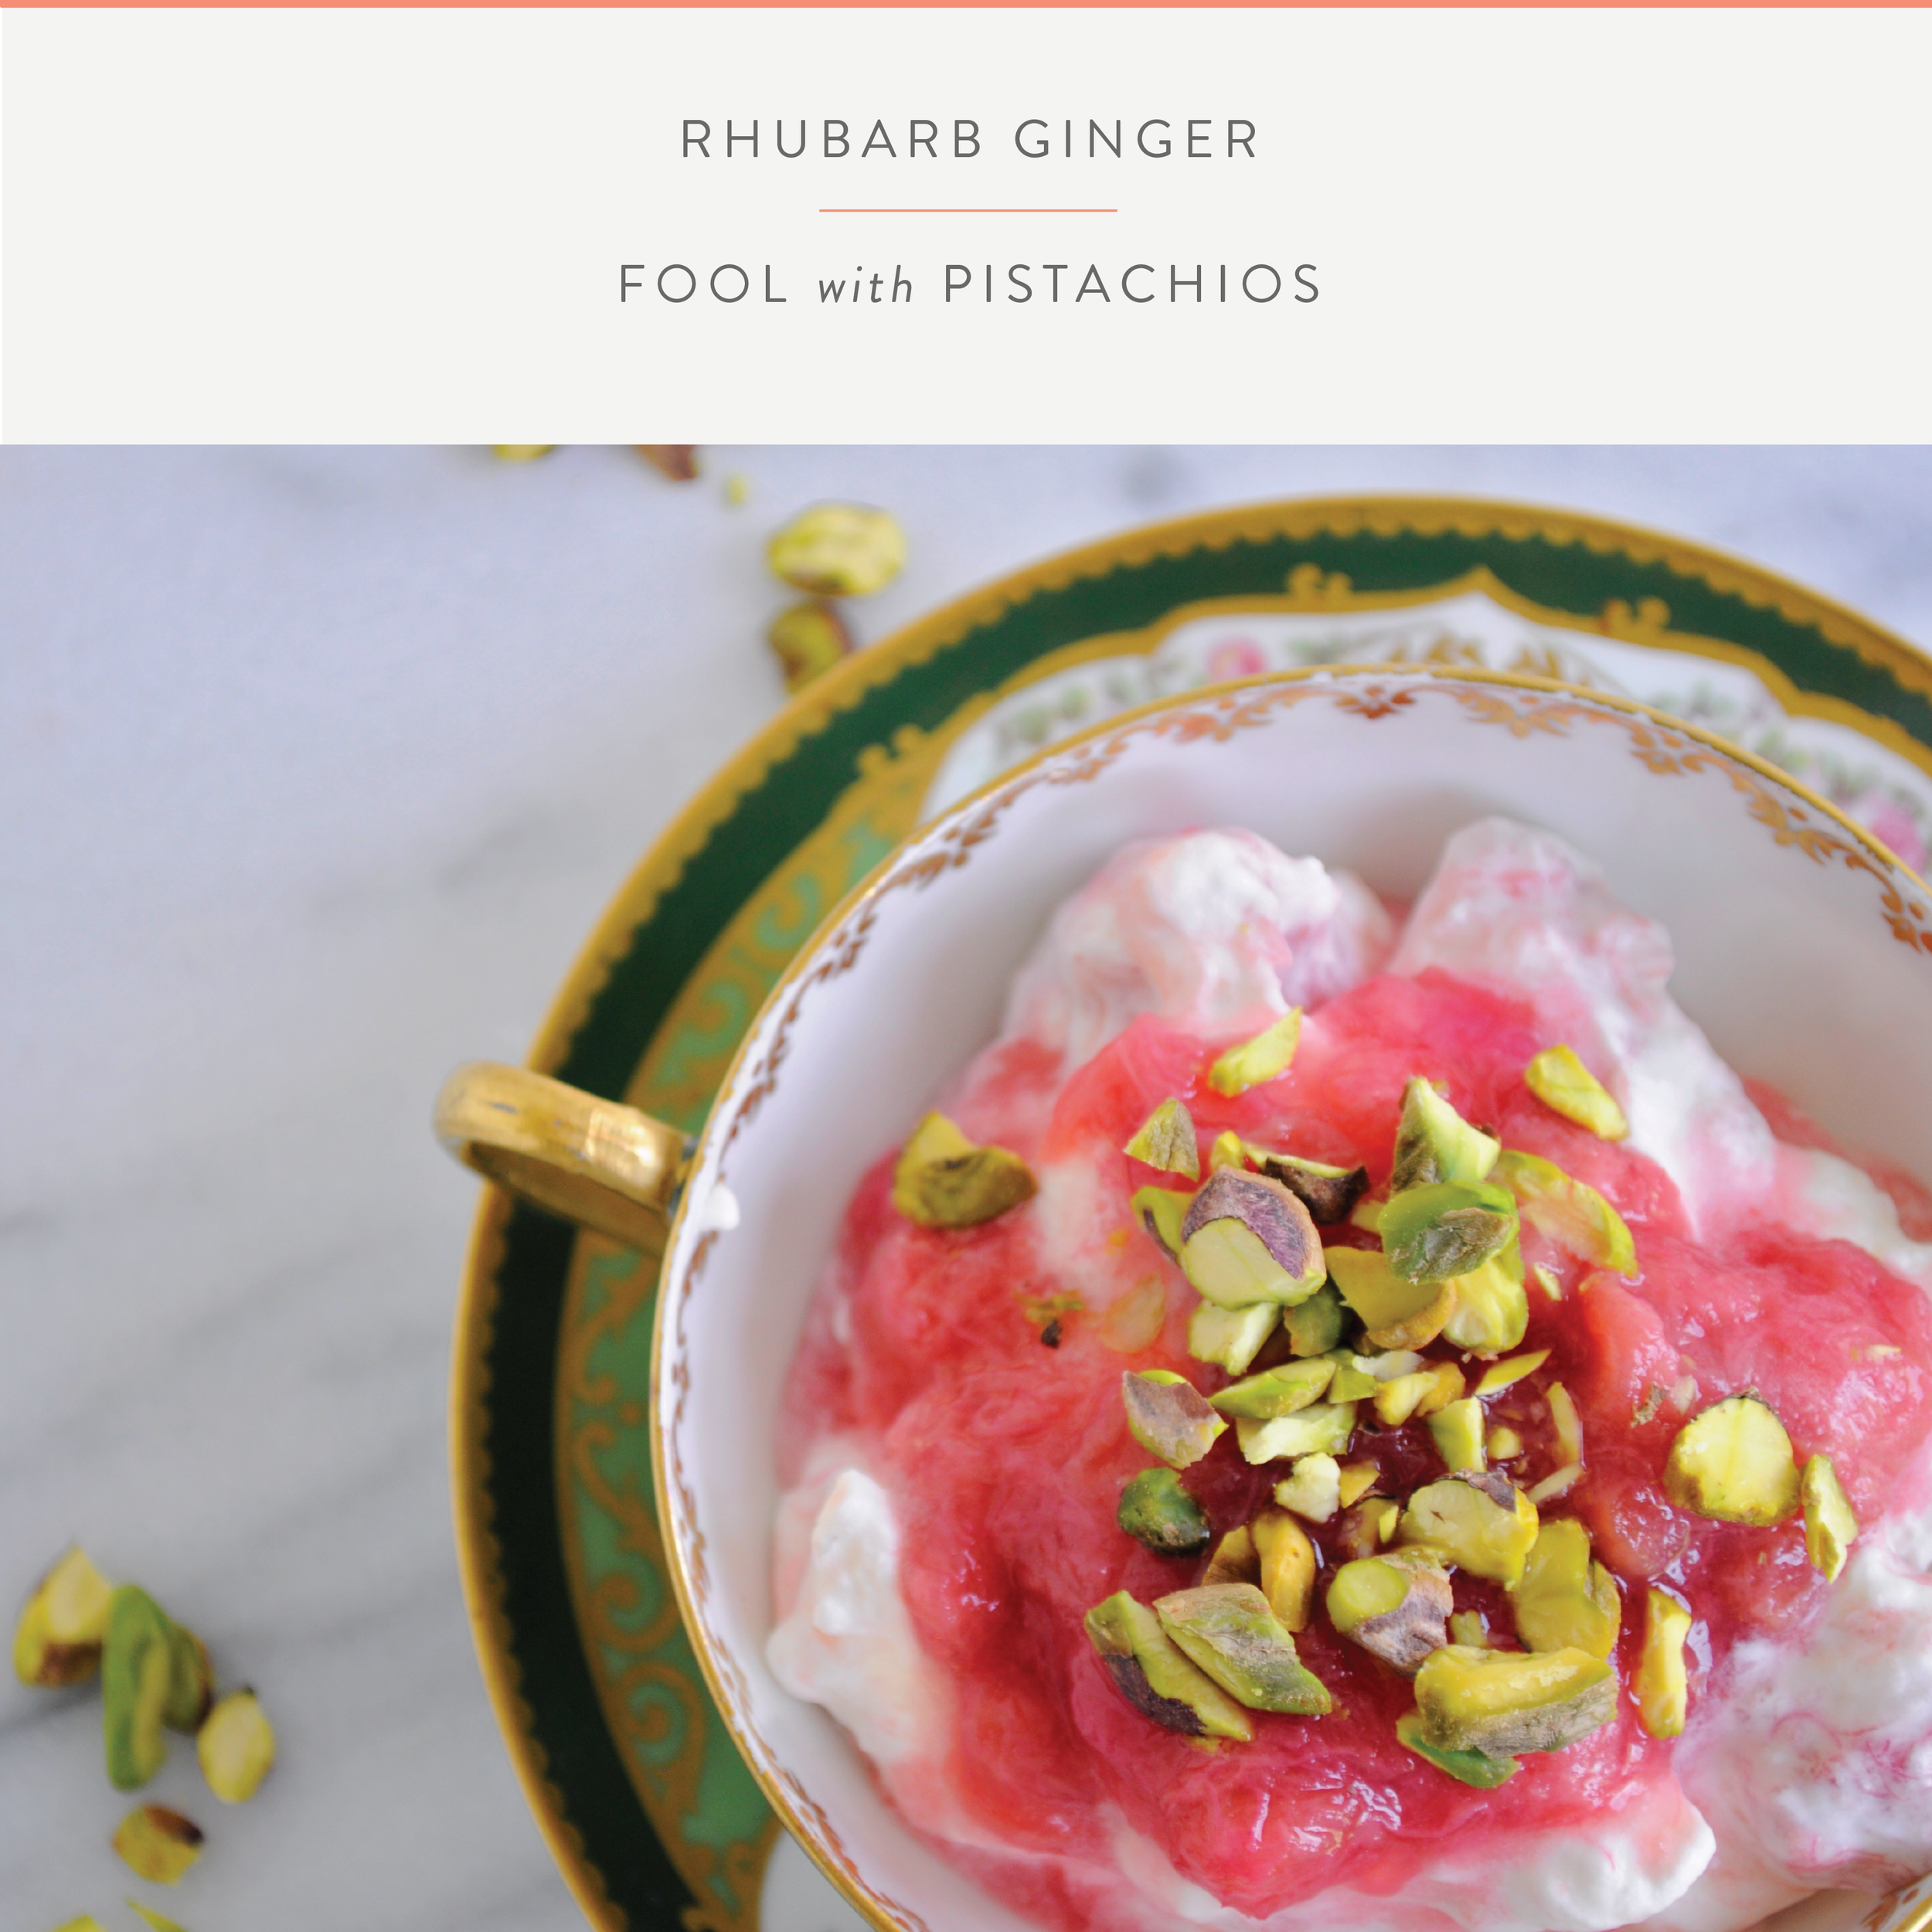 Summerfield Delight   Rhubarb Ginger Fool with Pistachio Crumbles